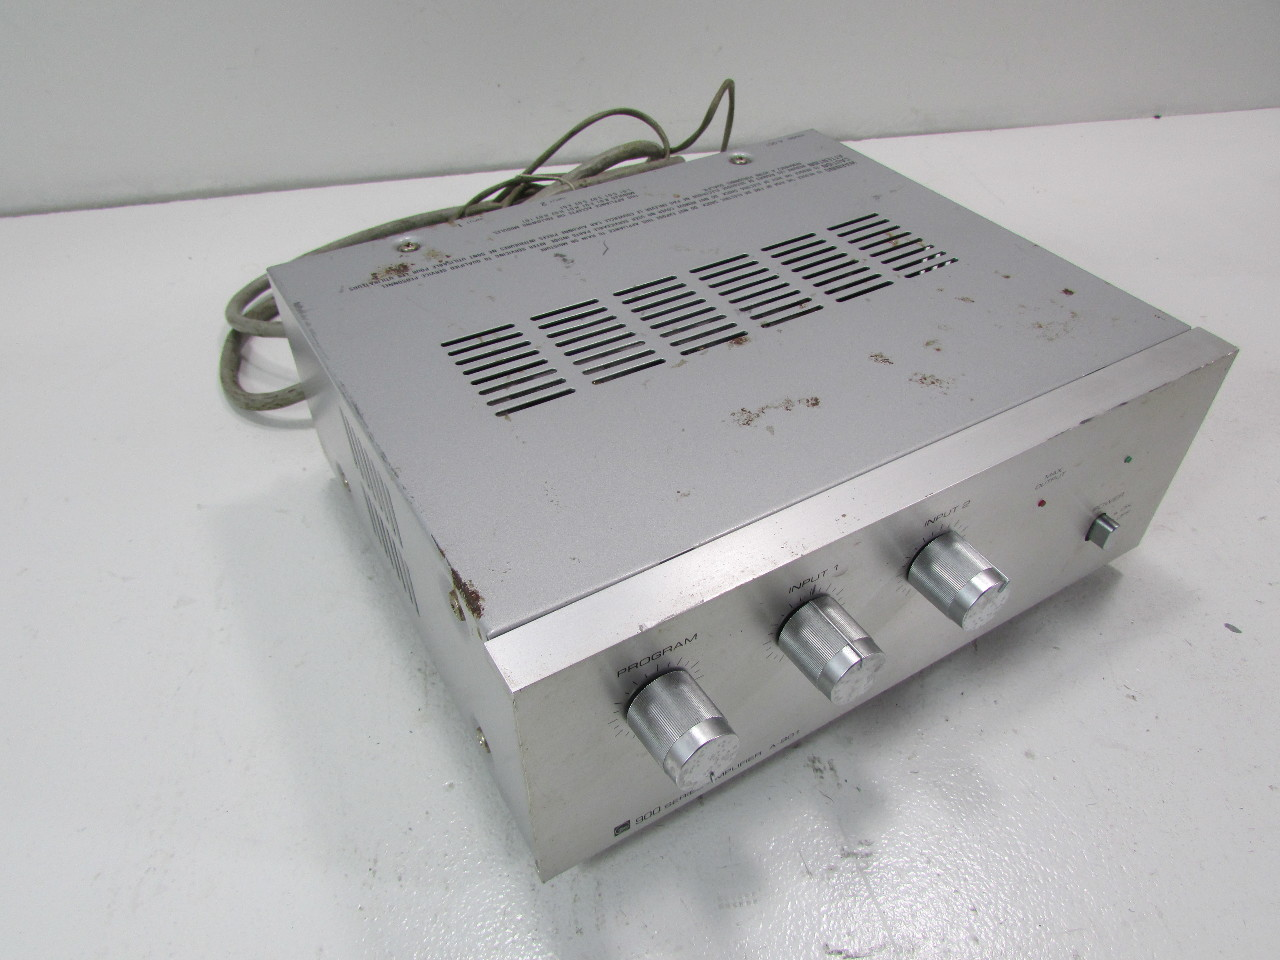 TOA ELECTRIC A-901 / 900 Series Amplifier A-901 SD06891